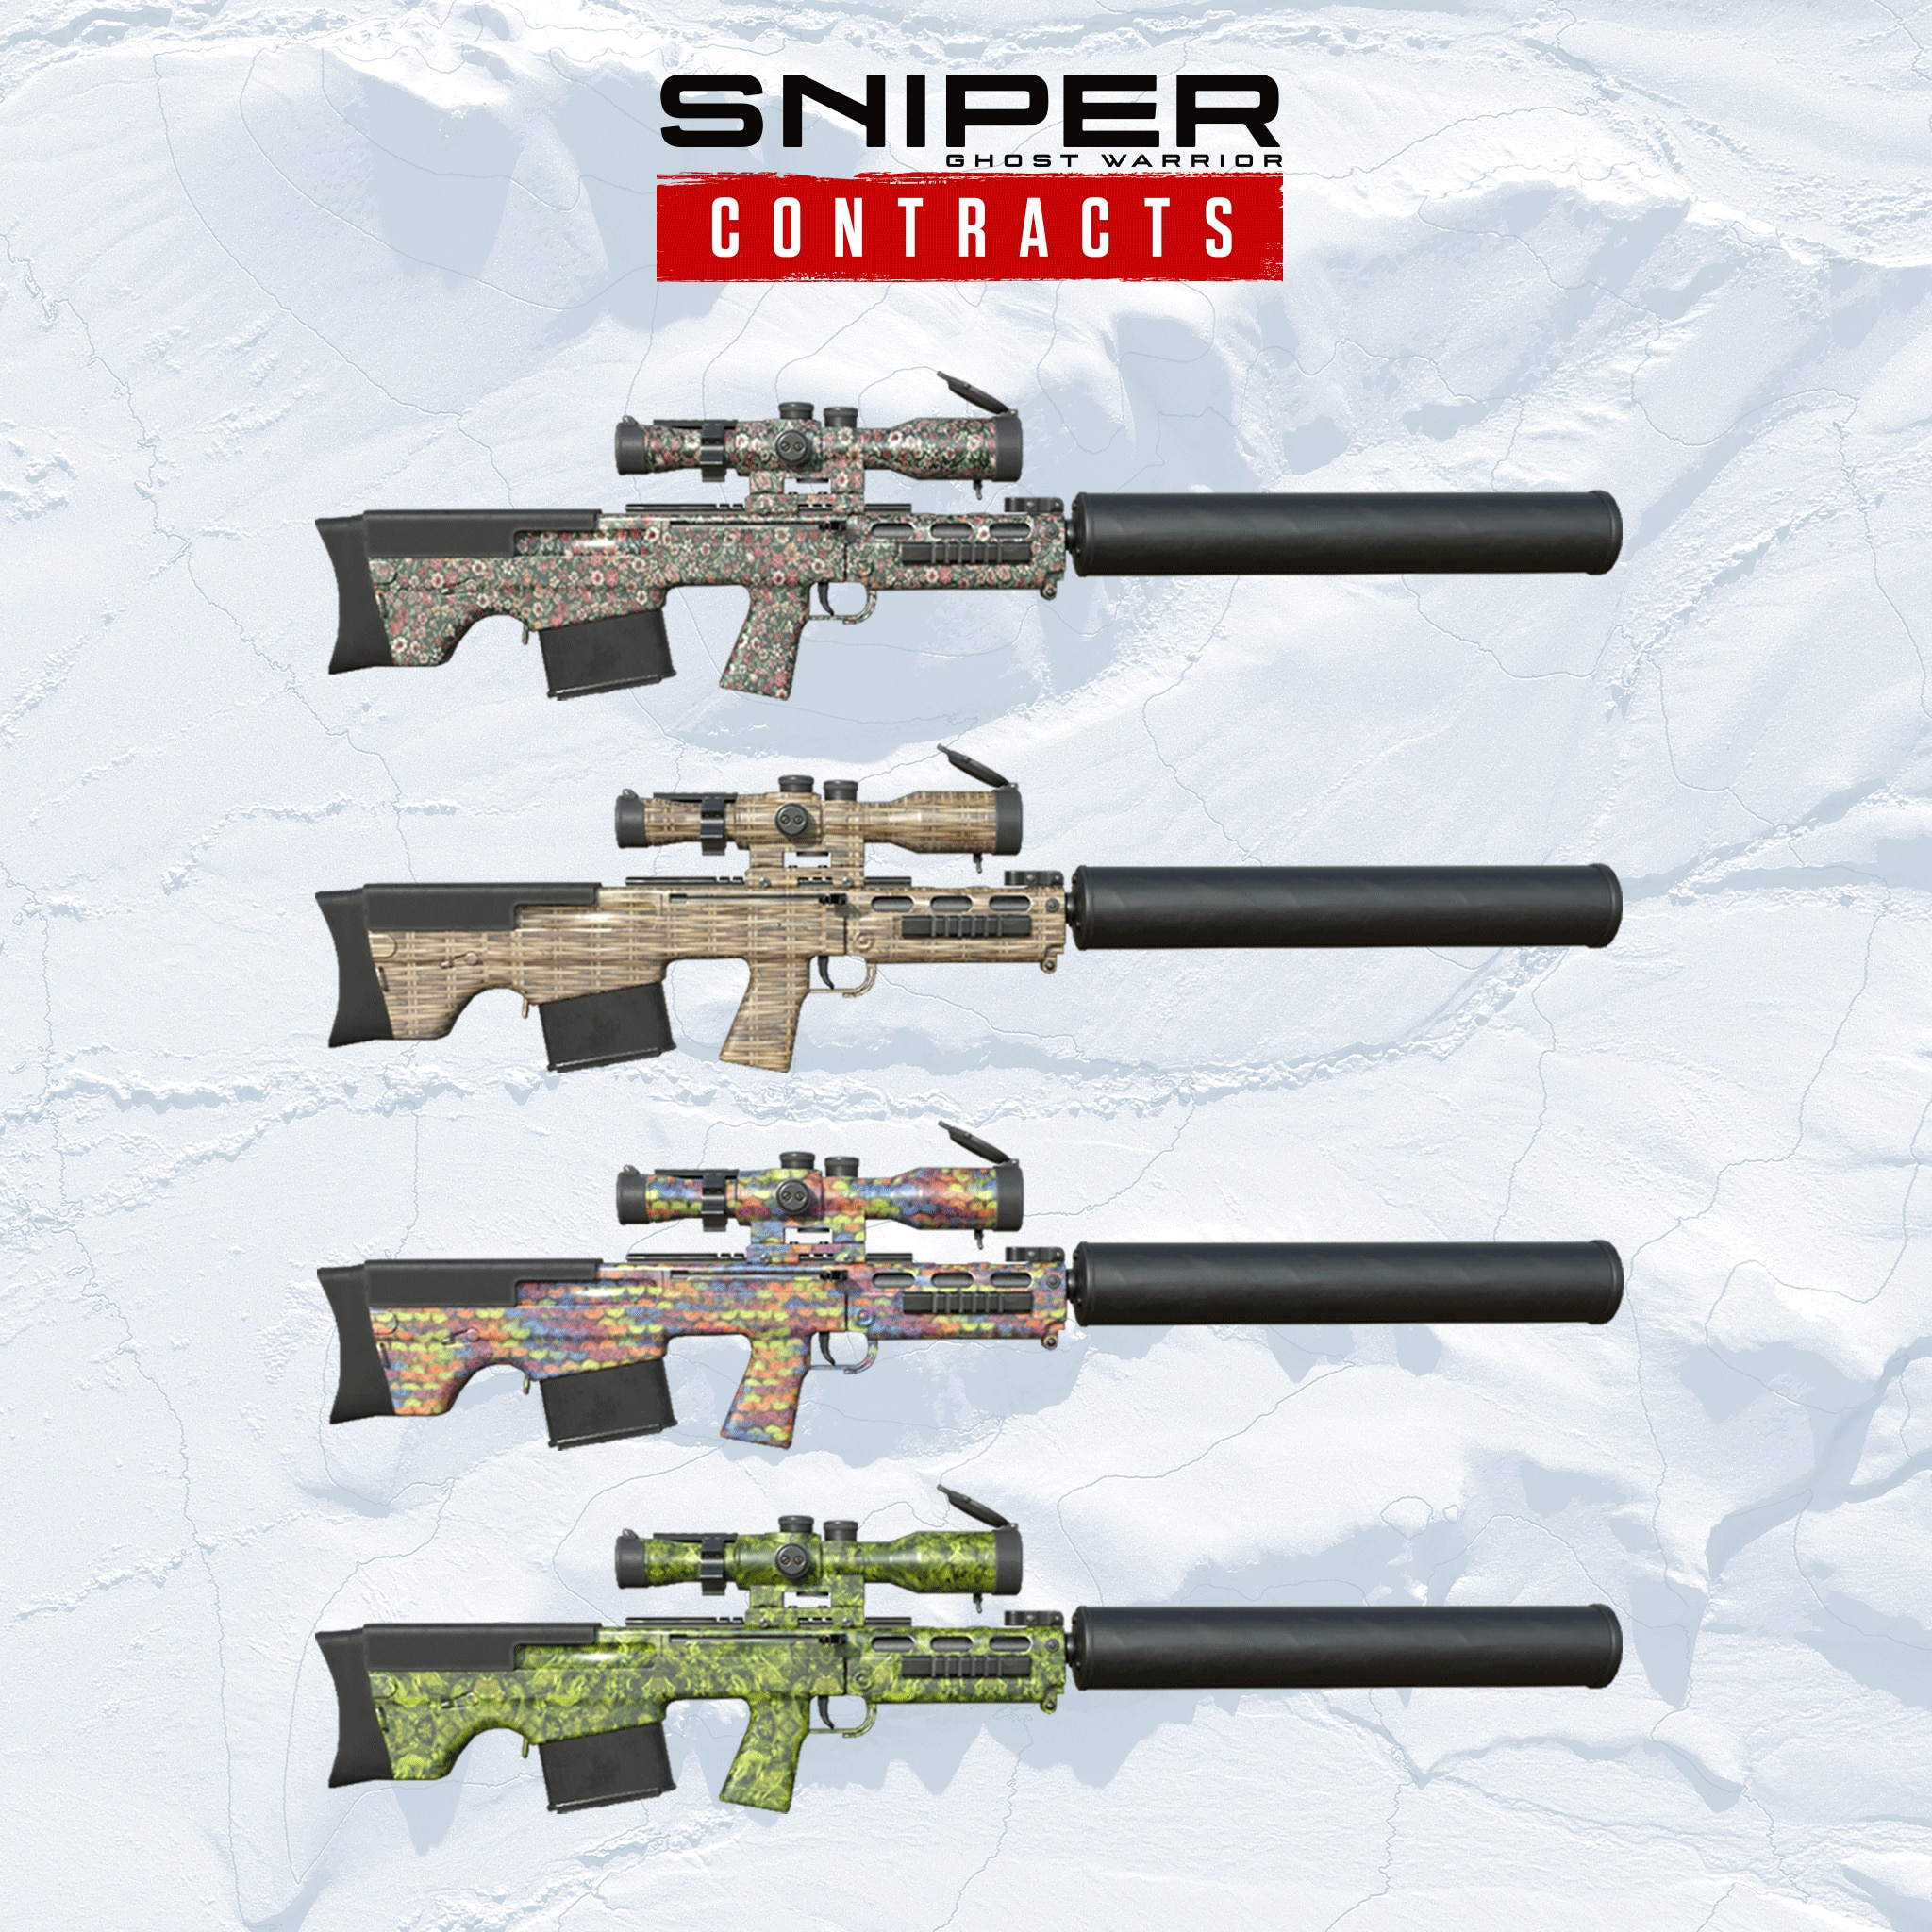 Sniper Ghost Warrior Contracts - Summer's Nostalgia